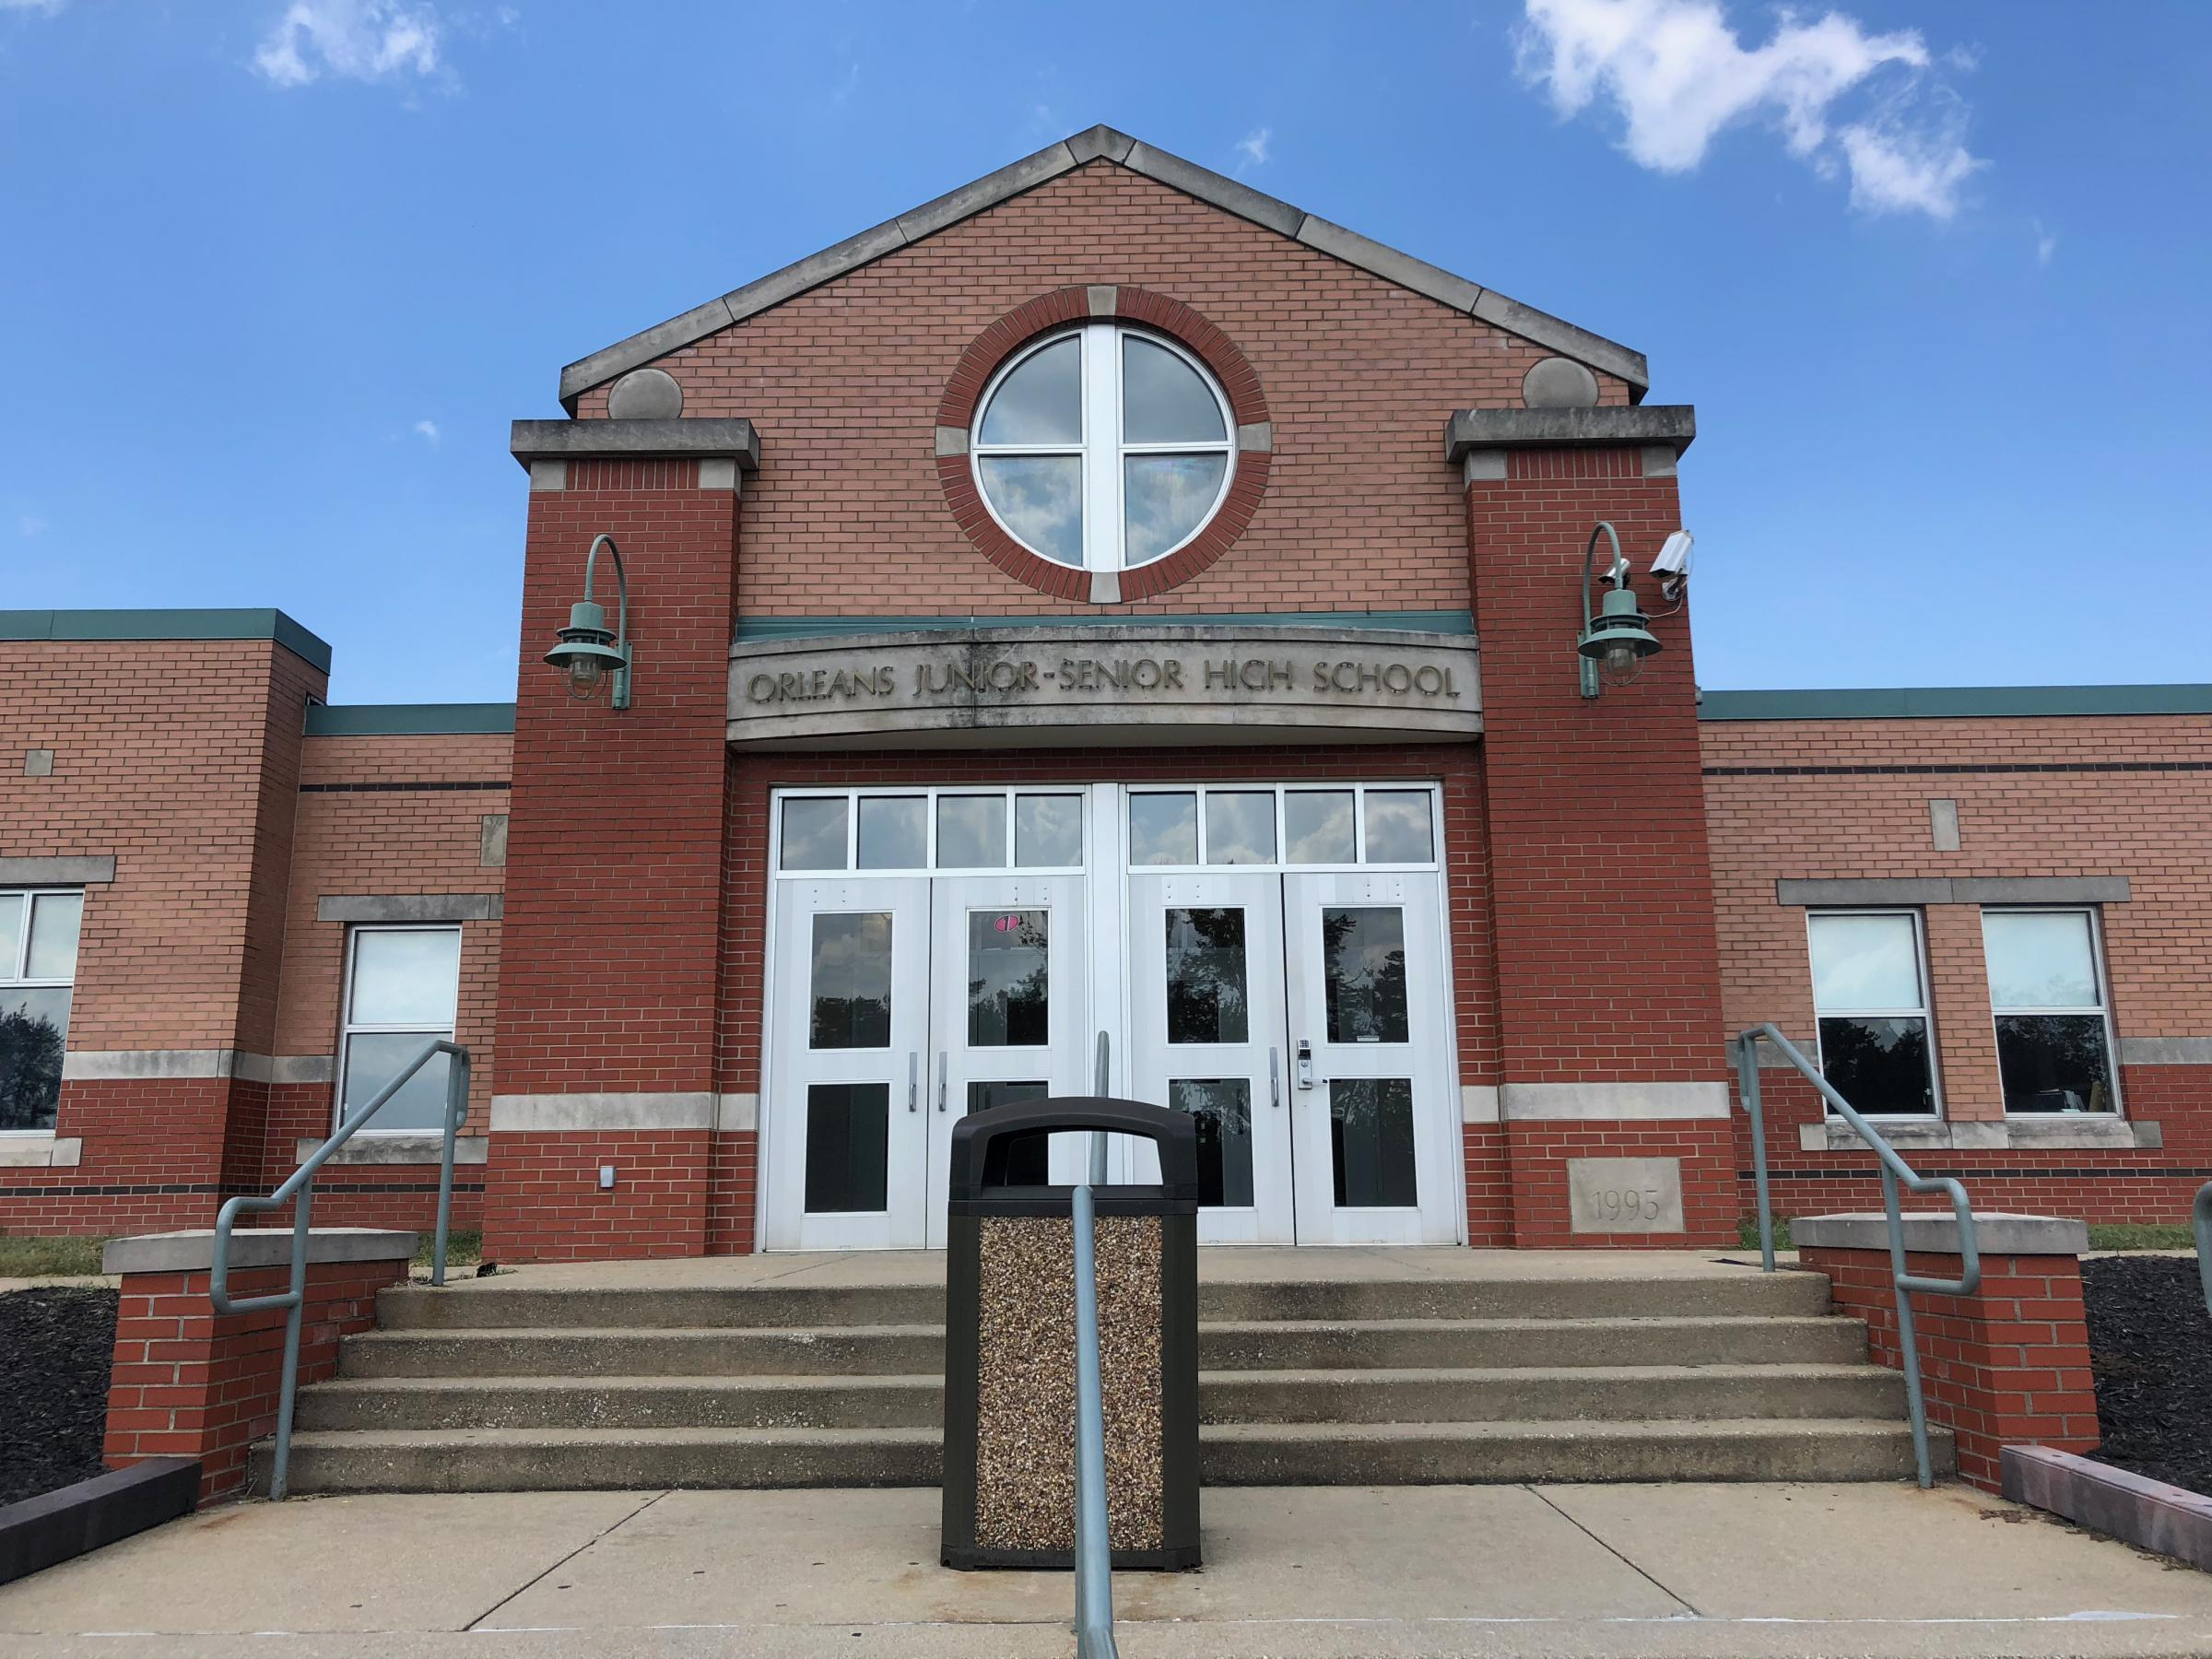 Orleans Jr/Sr High School holds grades 7th-12th and in the 2016-17 year had 346 students.